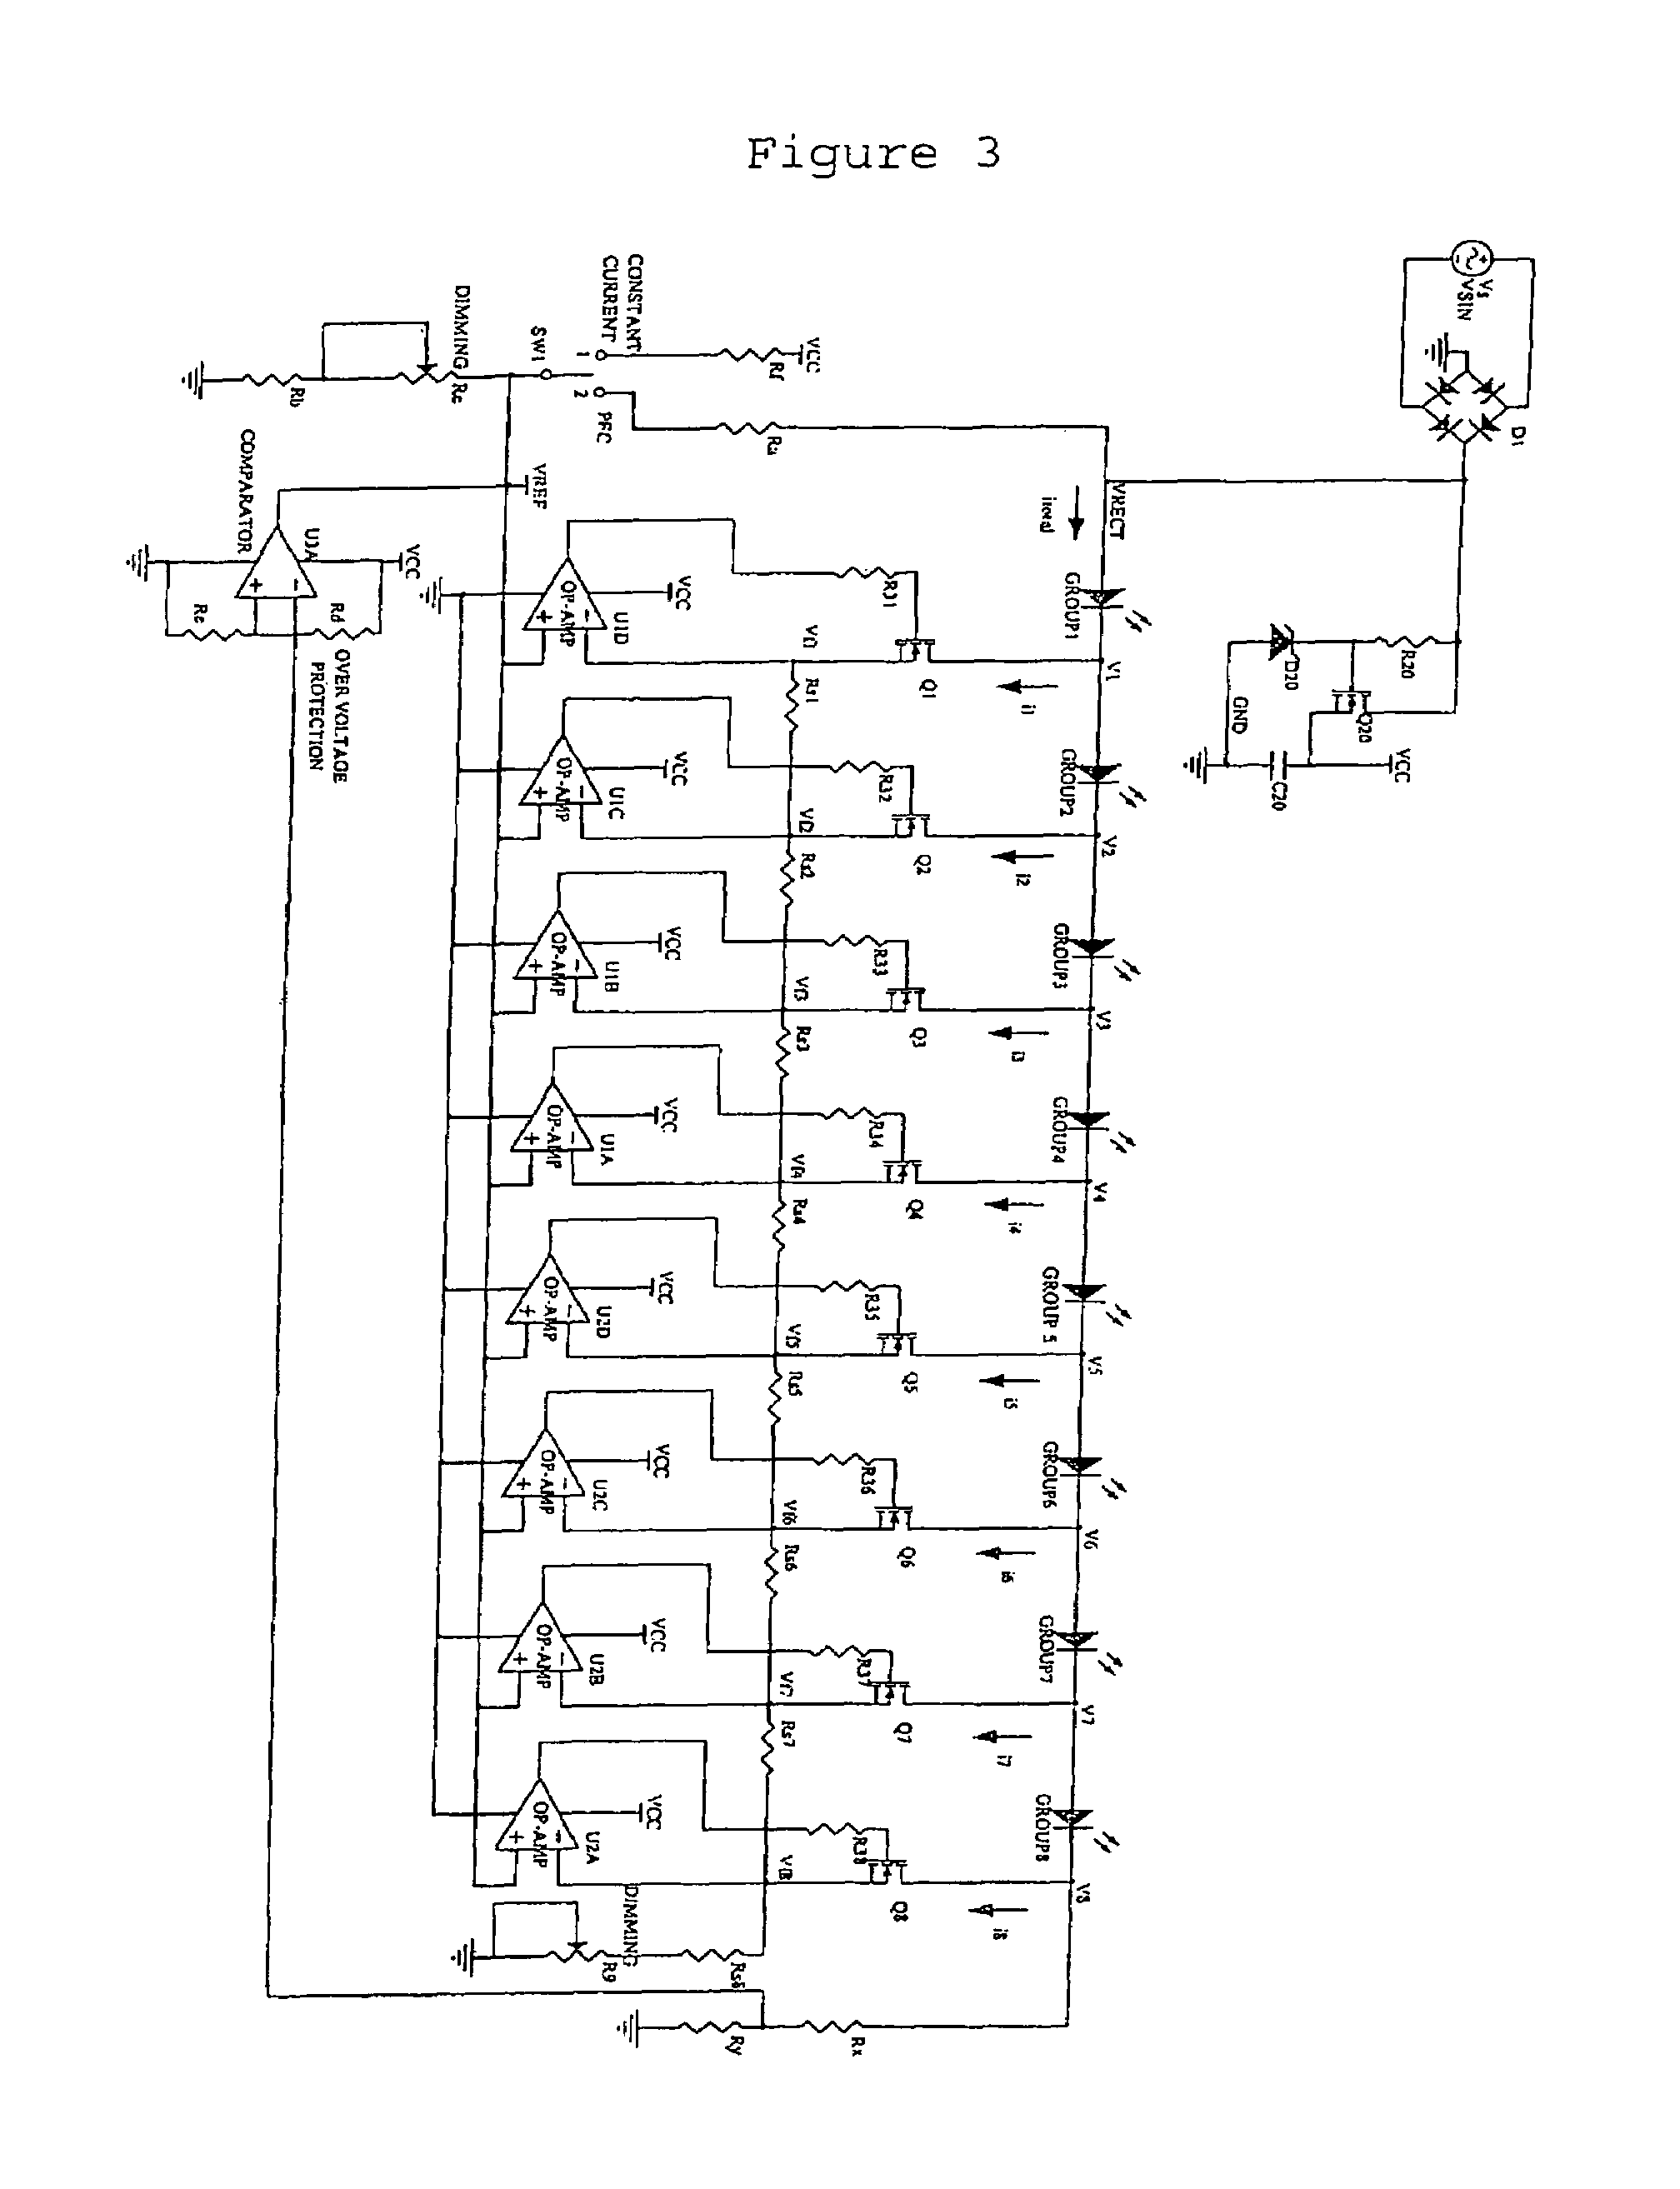 patent us7081722 - light emitting diode multiphase driver circuit and method